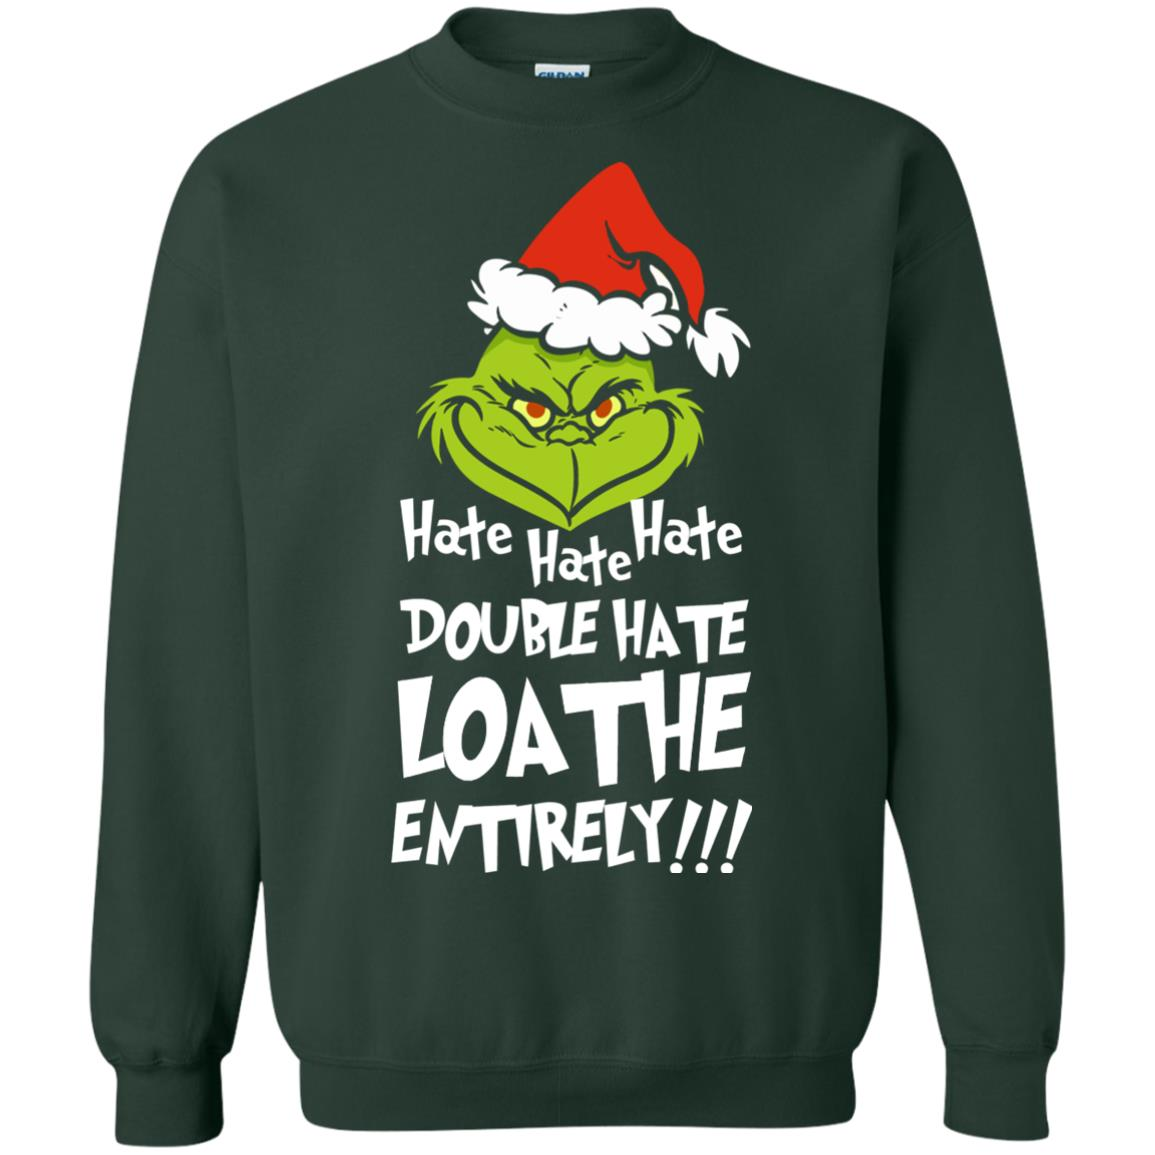 mr grinch hate hate hate double hate loathe entirely christmas sweater ugly sweatshirts